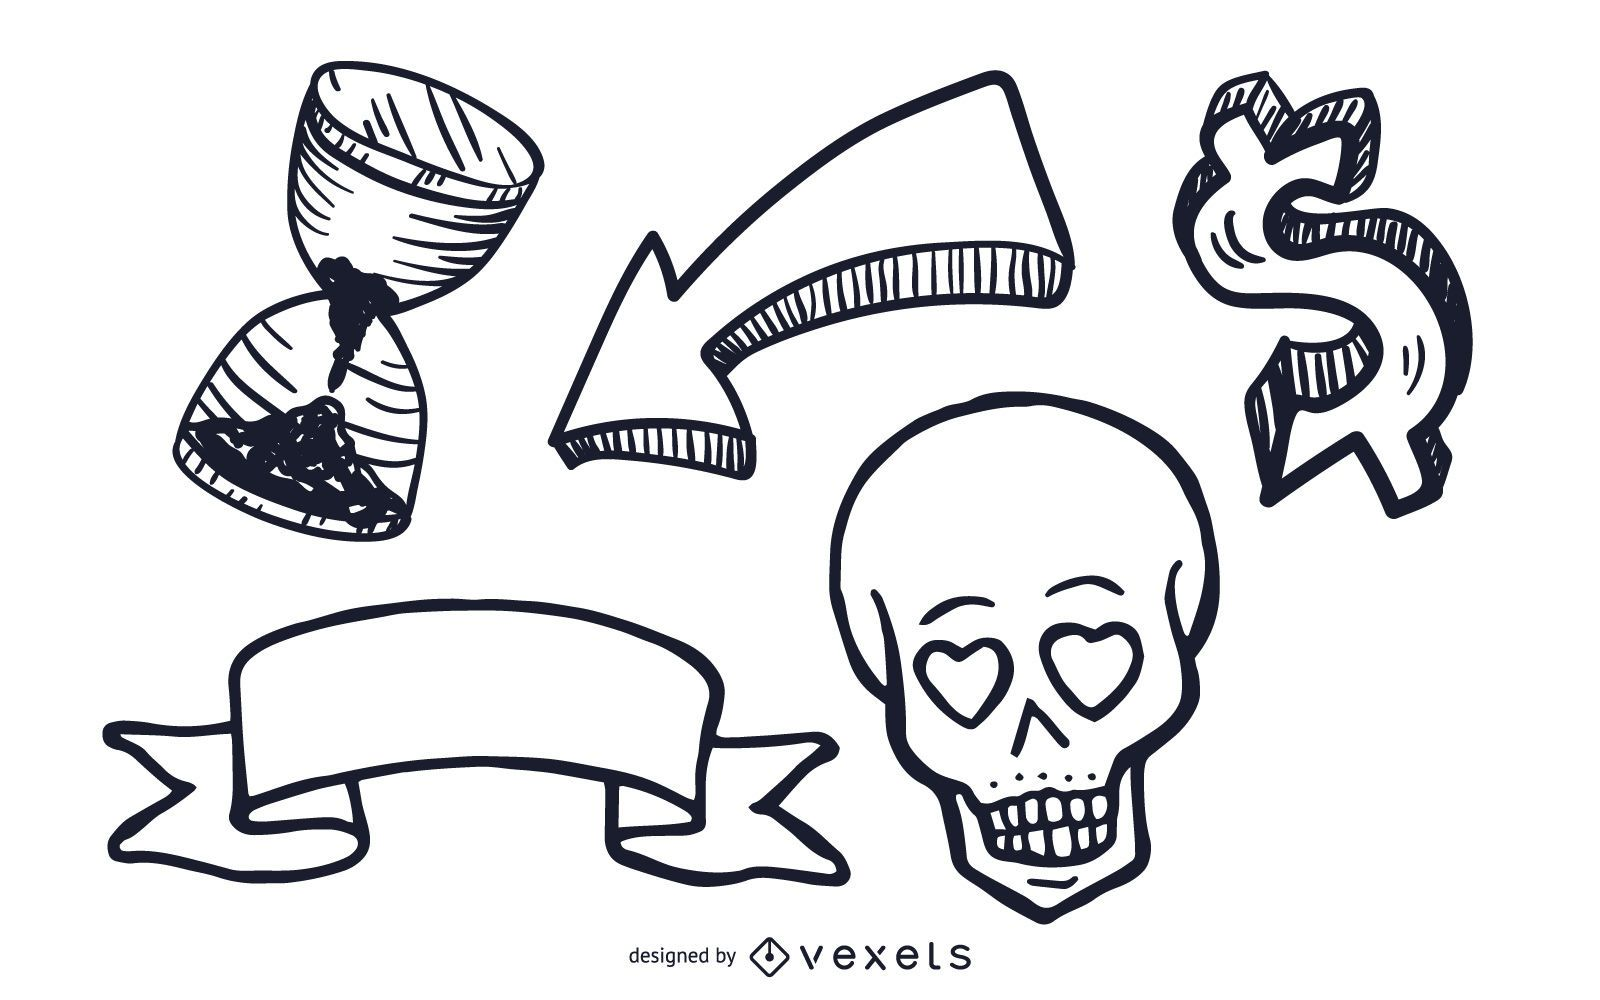 Misc objects illustrations set